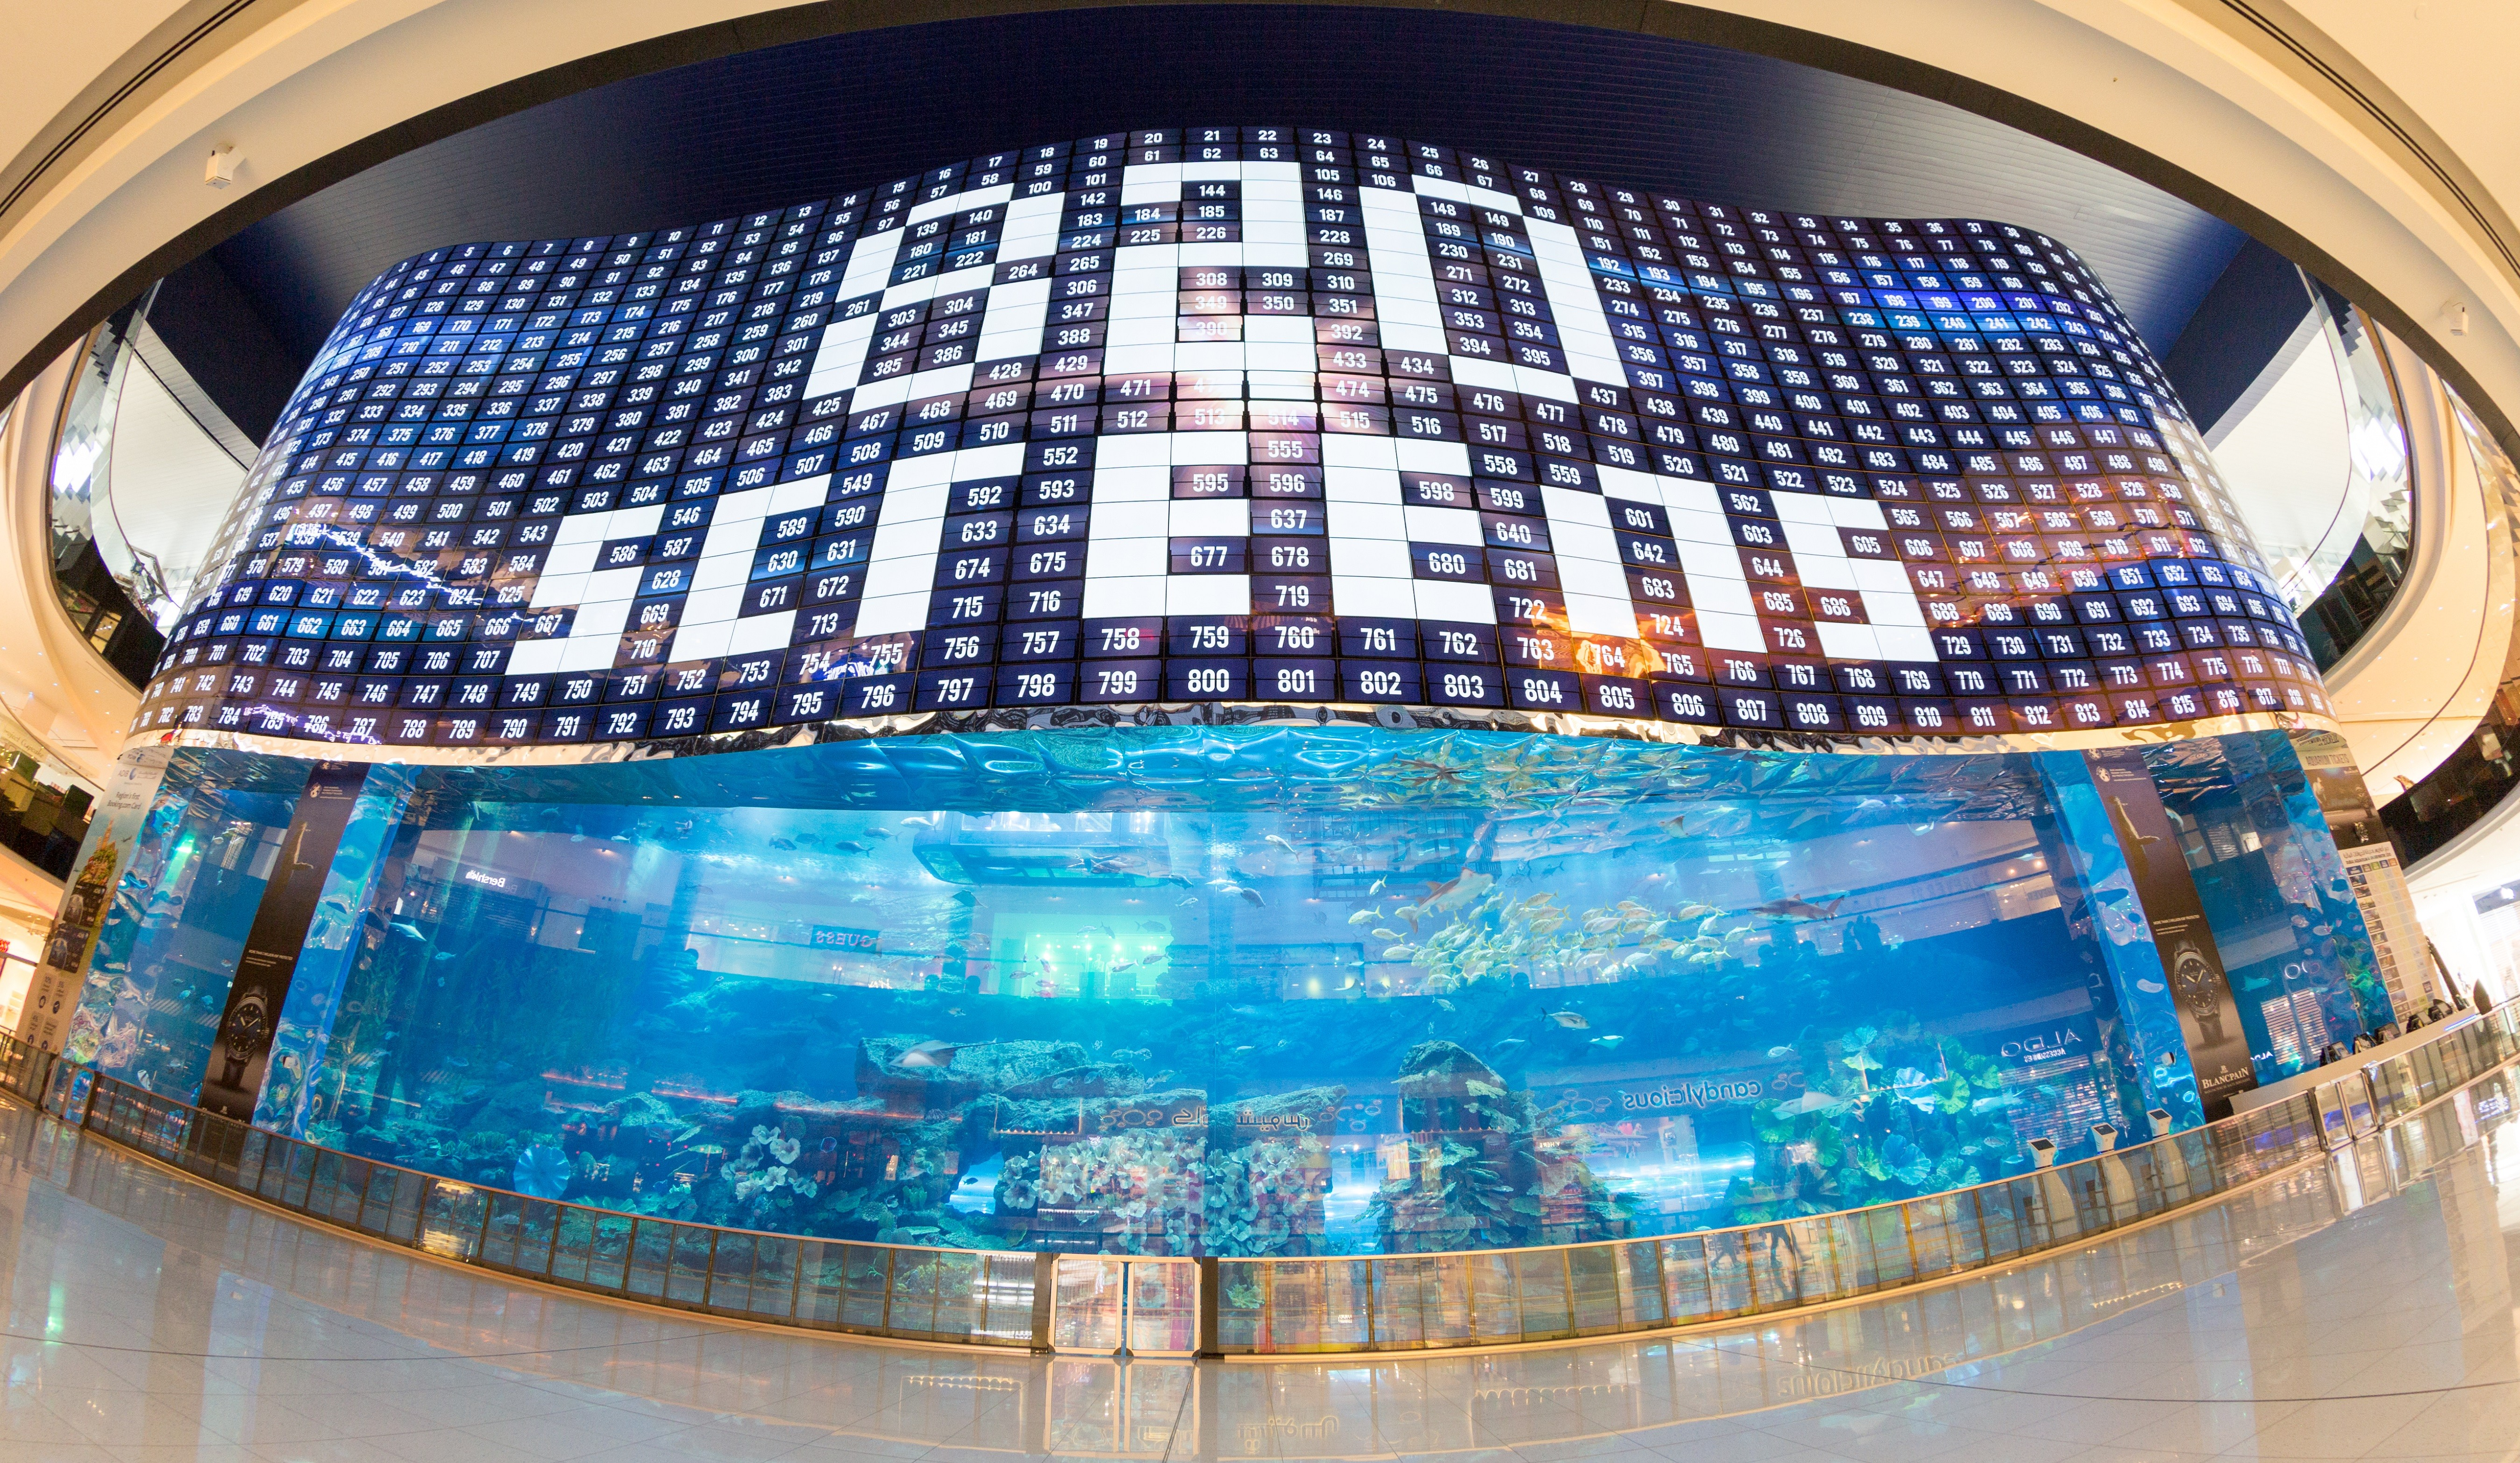 A gigantic LG OLED video wall signage displaying the fact that it uses '820 screens' at the Dubai Aquarium